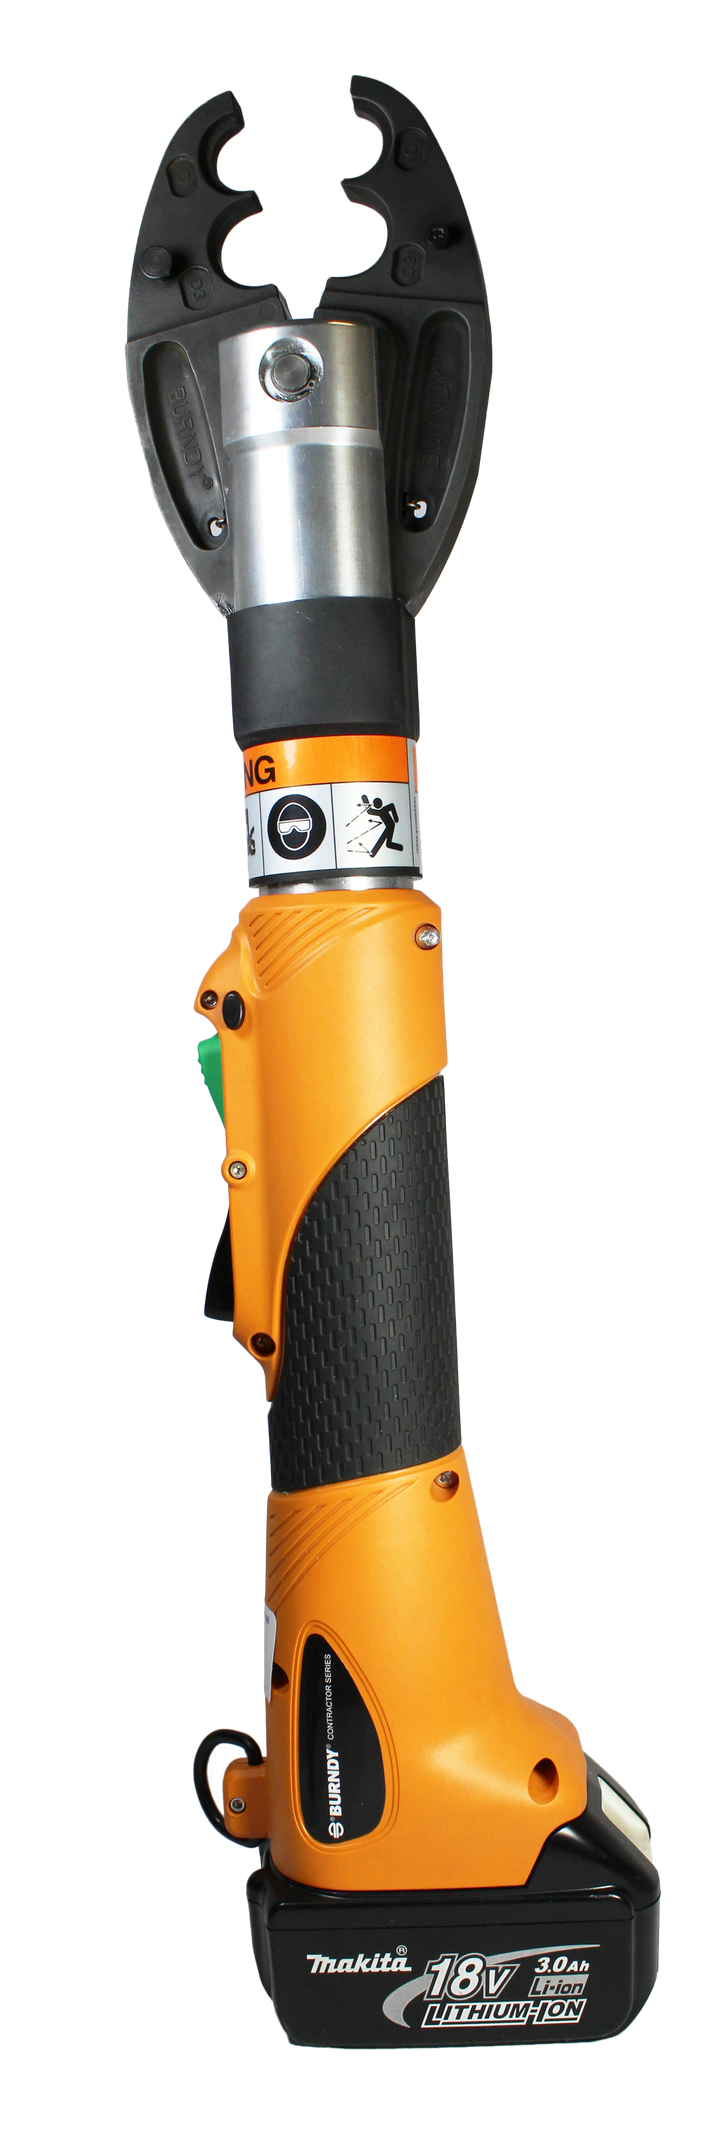 Content Dam Up En Articles 2015 07 Crimping Tool Contractor Series 6 Ton Li Ion Battery Platform In Line Crimping Tool Leftcolumn Article Thumbnailimage File